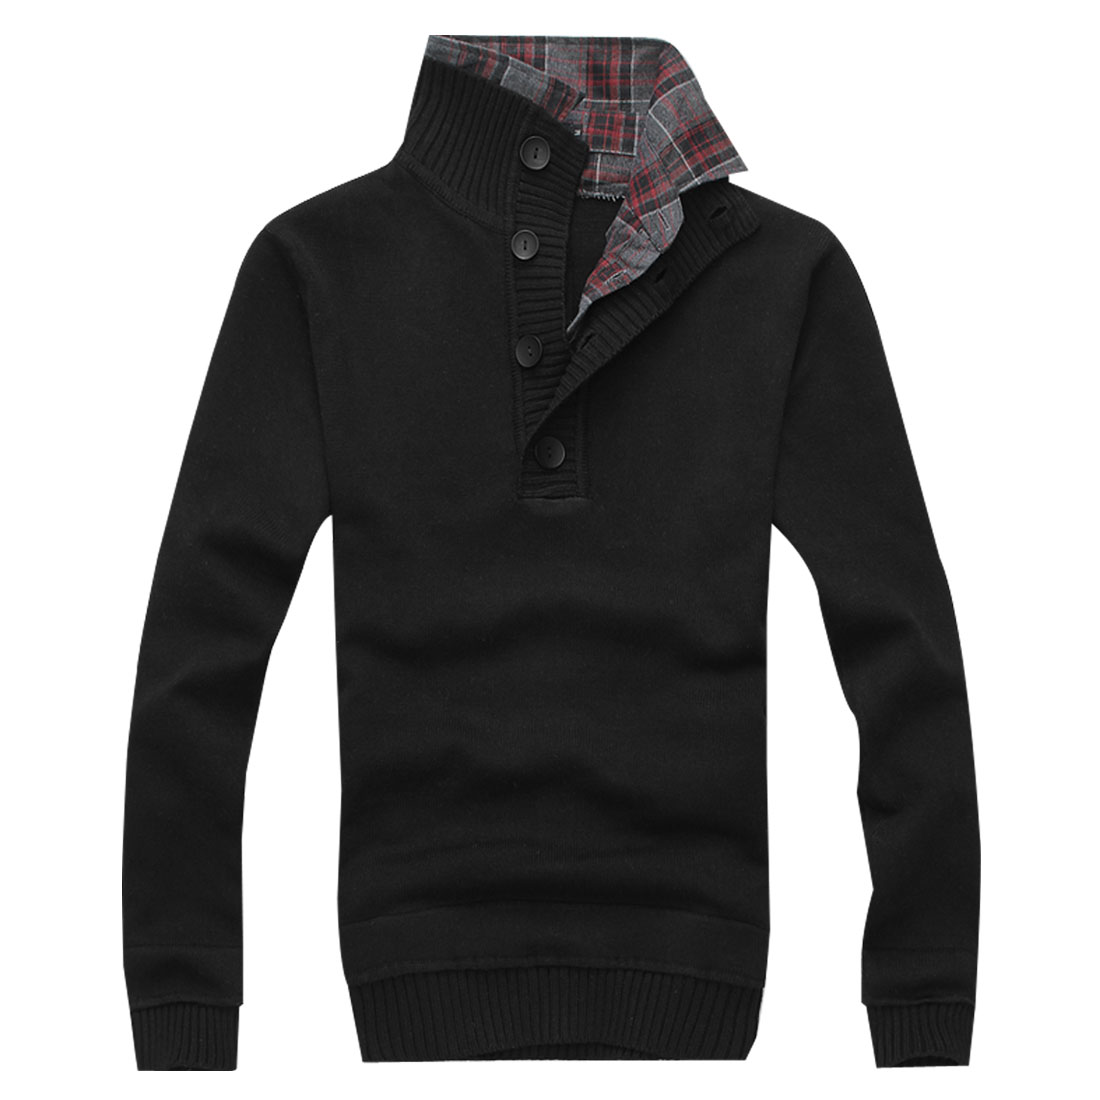 Men Black NEW Stretchy Solid Color Long Sleeve Casual Knitting Shirt S